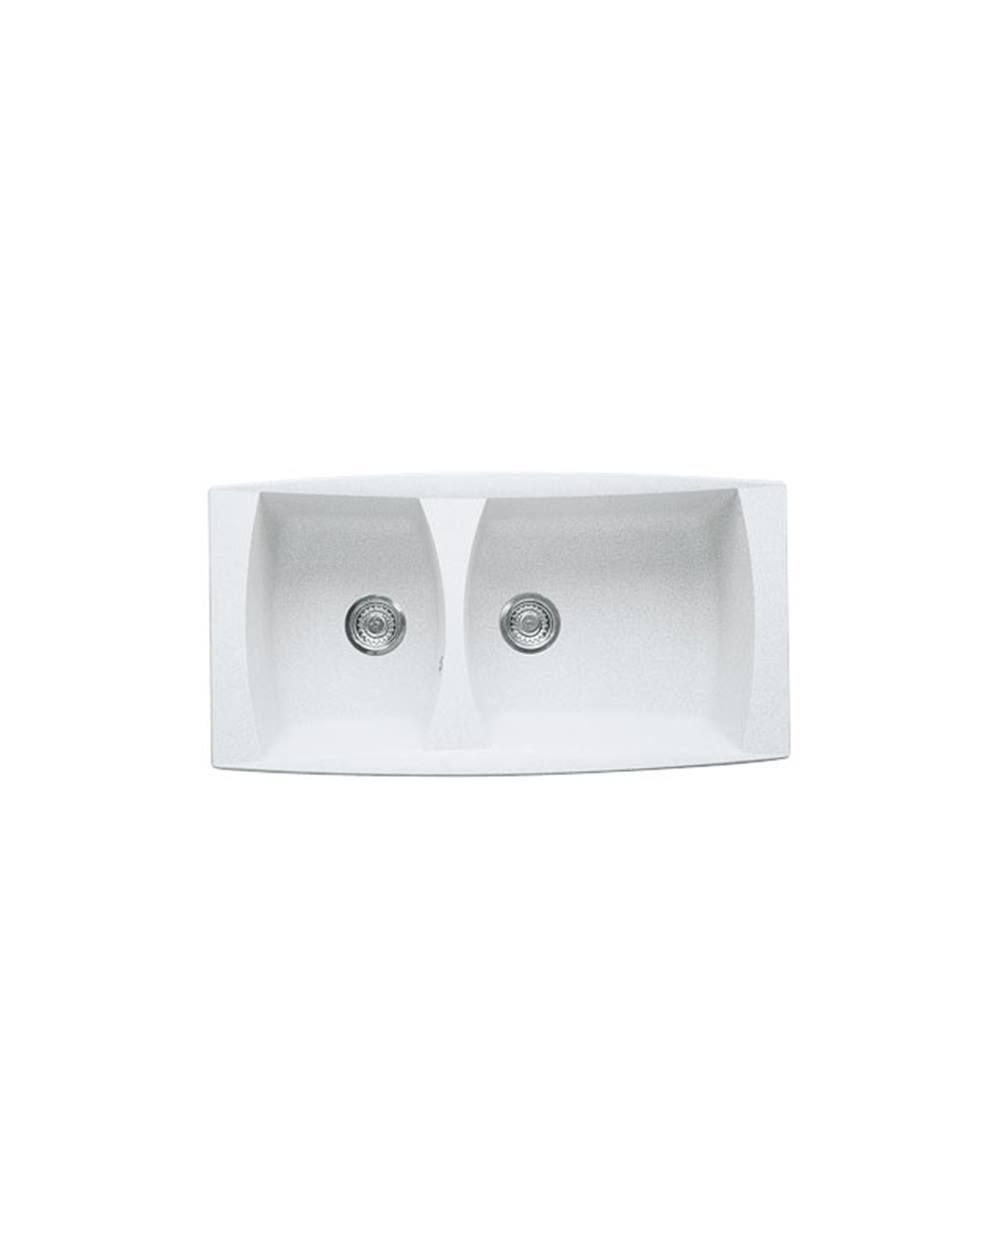 Sink Milan MIG 620 Polar White A Inlaid Sink With Two Different Troughs. It  Can